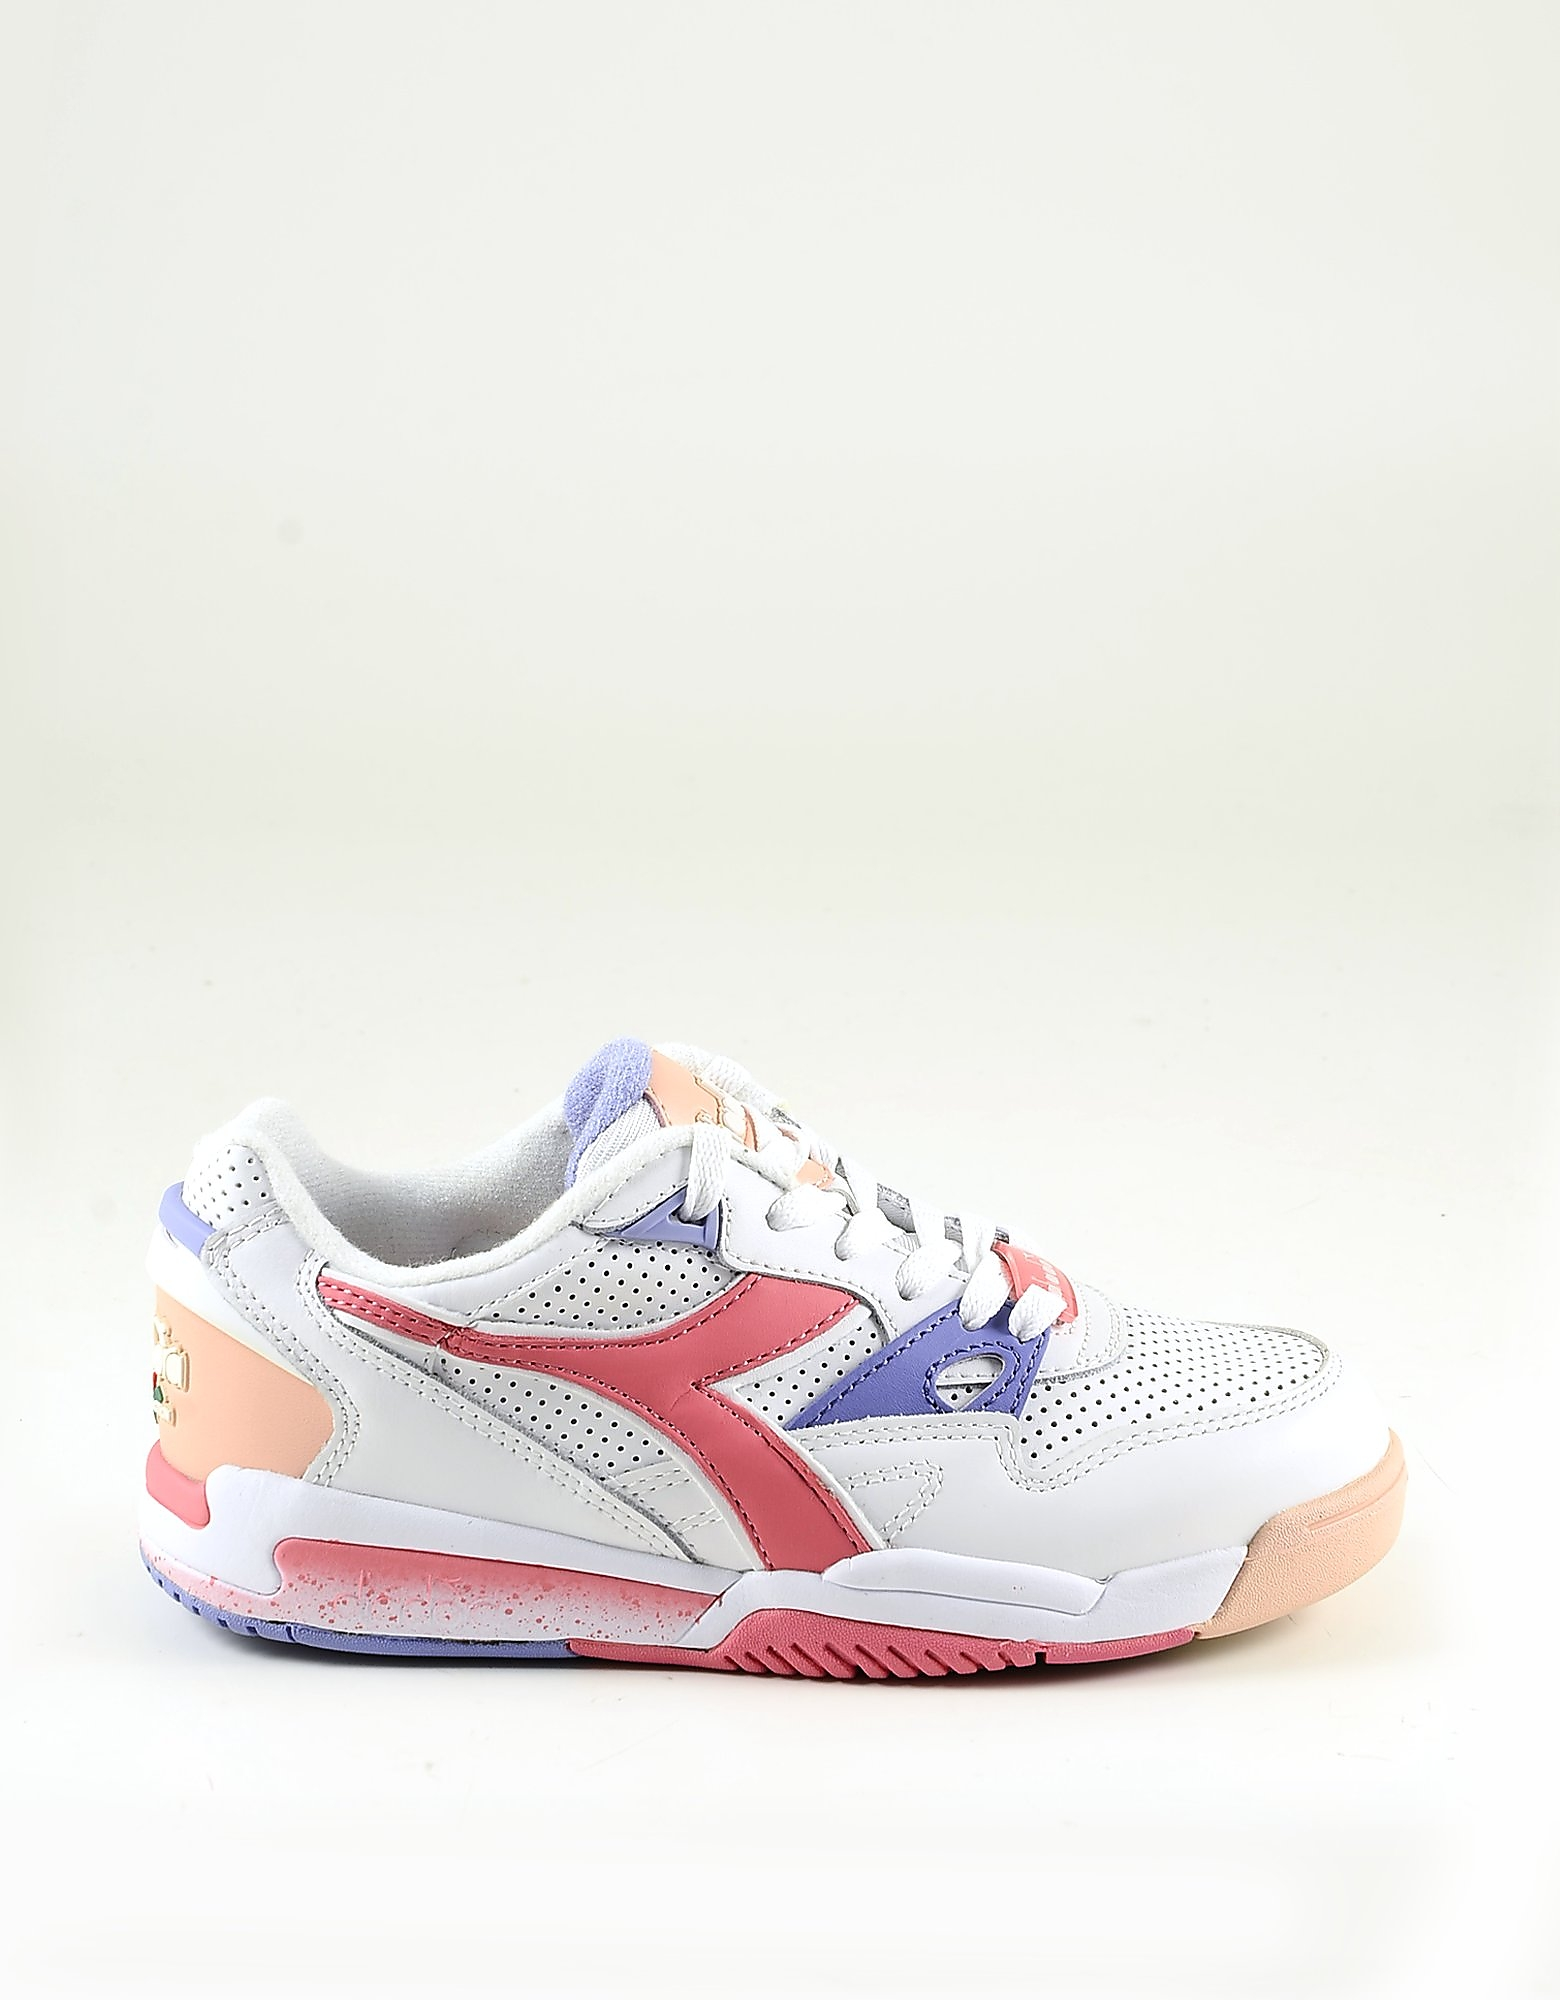 Diadora Designer Shoes, White Mesh and Pink Leather Women's Sneakers